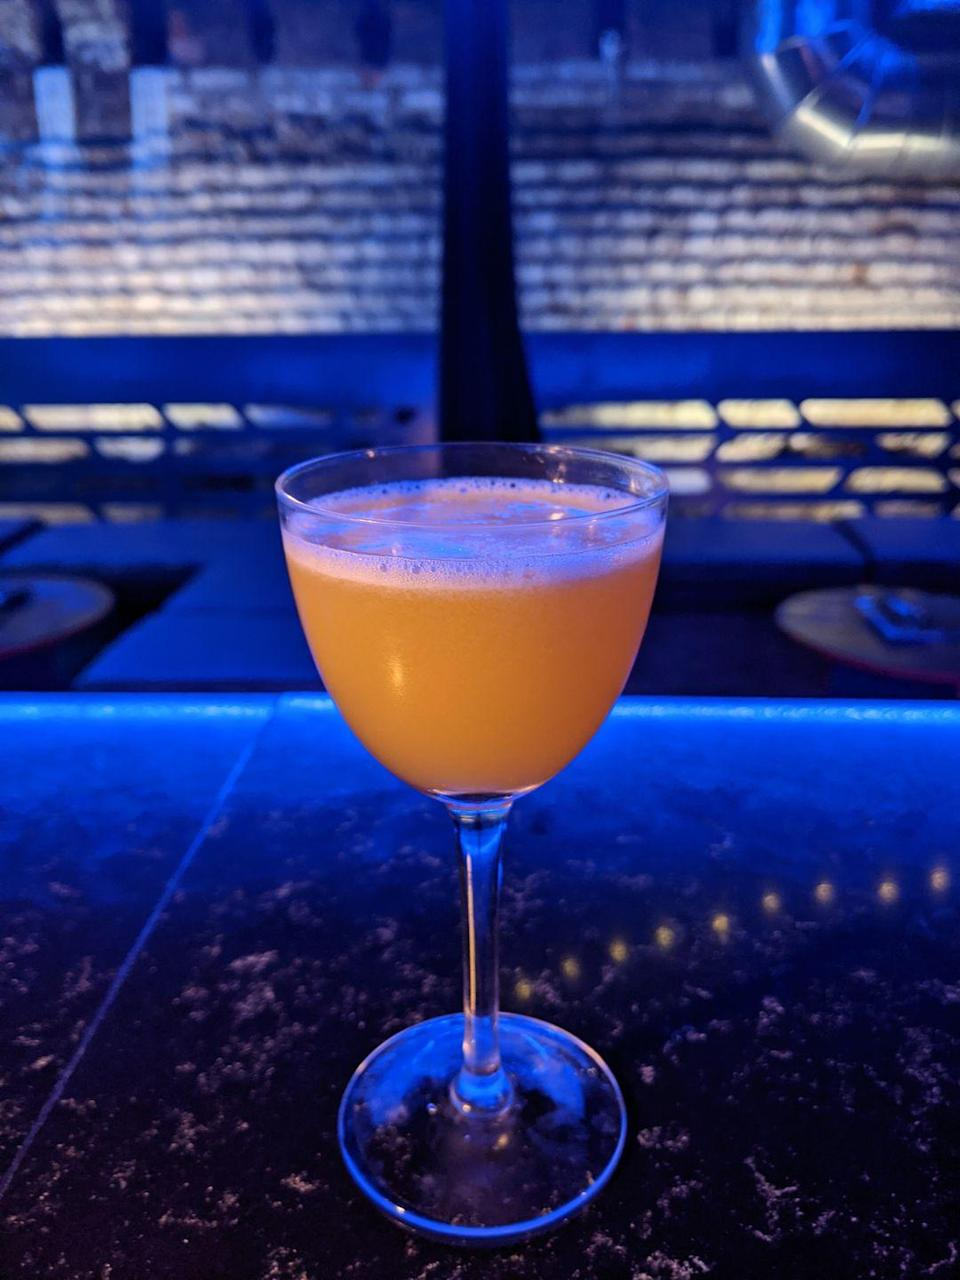 """<p>This botanical beverage is an editor-favorite and can be found at <a href=""""https://www.pilcrowbham.com/"""" rel=""""nofollow noopener"""" target=""""_blank"""" data-ylk=""""slk:Pilcrow Cocktail Cellar"""" class=""""link rapid-noclick-resp"""">Pilcrow Cocktail Cellar</a> in Birmingham. We love the use of orange over lime or grapefruit for a fabulous tequila cocktail. Pilcrow's Joe Phelps advises serving this drink in a Nick and Nora glass and says that a drink this vibrant and bright, no garnish is needed.</p><p><strong>Ingredients:</strong></p><p>1 1/2 ounces blanco tequila</p><p>1/2 ounce Amaro Montenegro</p><p>1 ounce sour orange juice (freshly squeezed orange juice adjusted by adding 32g citric and 20g malic acid or freshly squeezed lime juice, to taste)</p><p>1/4 ounce honey syrup (2:1 honey to water)</p><p>2 drops bergamot oil<br></p><p>1.5 oz blanco tequila.5 oz Amaro Montenegro1 oz Sour Orange Juice (fresh squeezed oj adjusted by adding citric and malic acid).25 oz honey syrup (2:1 honey to water)2 drops of Bergamot The acid adjusted OJ comes out with the tartness of lime juice </p><p>by color and flavor of orange juice. The small amount of bergamot expands the floral aspects of the cocktail. With such a bright and vibrant looking cocktail, no garnish is needed. We use a Nick & Nora glass for The Pilcrow. I'll hopefully get a picture snapped tonight.</p>"""